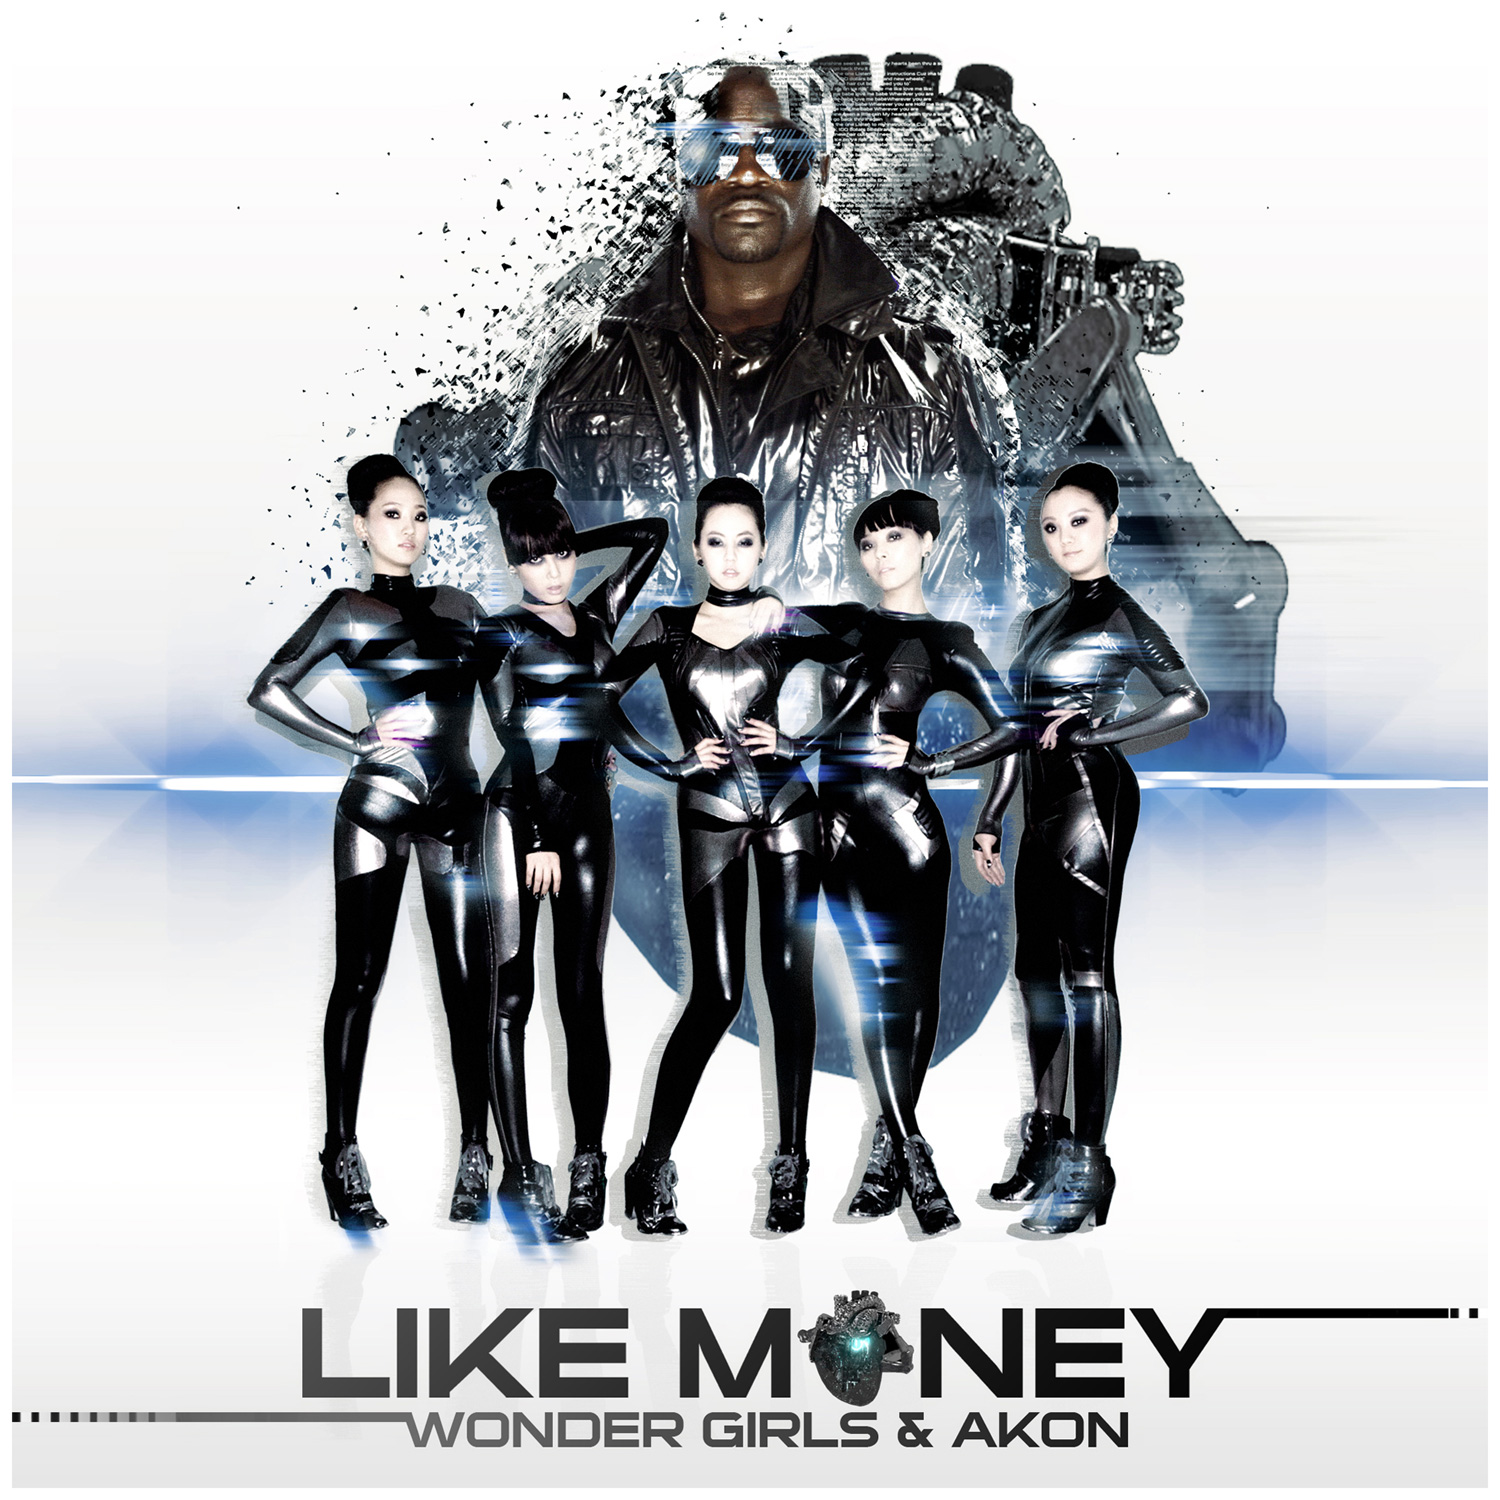 wondergirlslikemoney